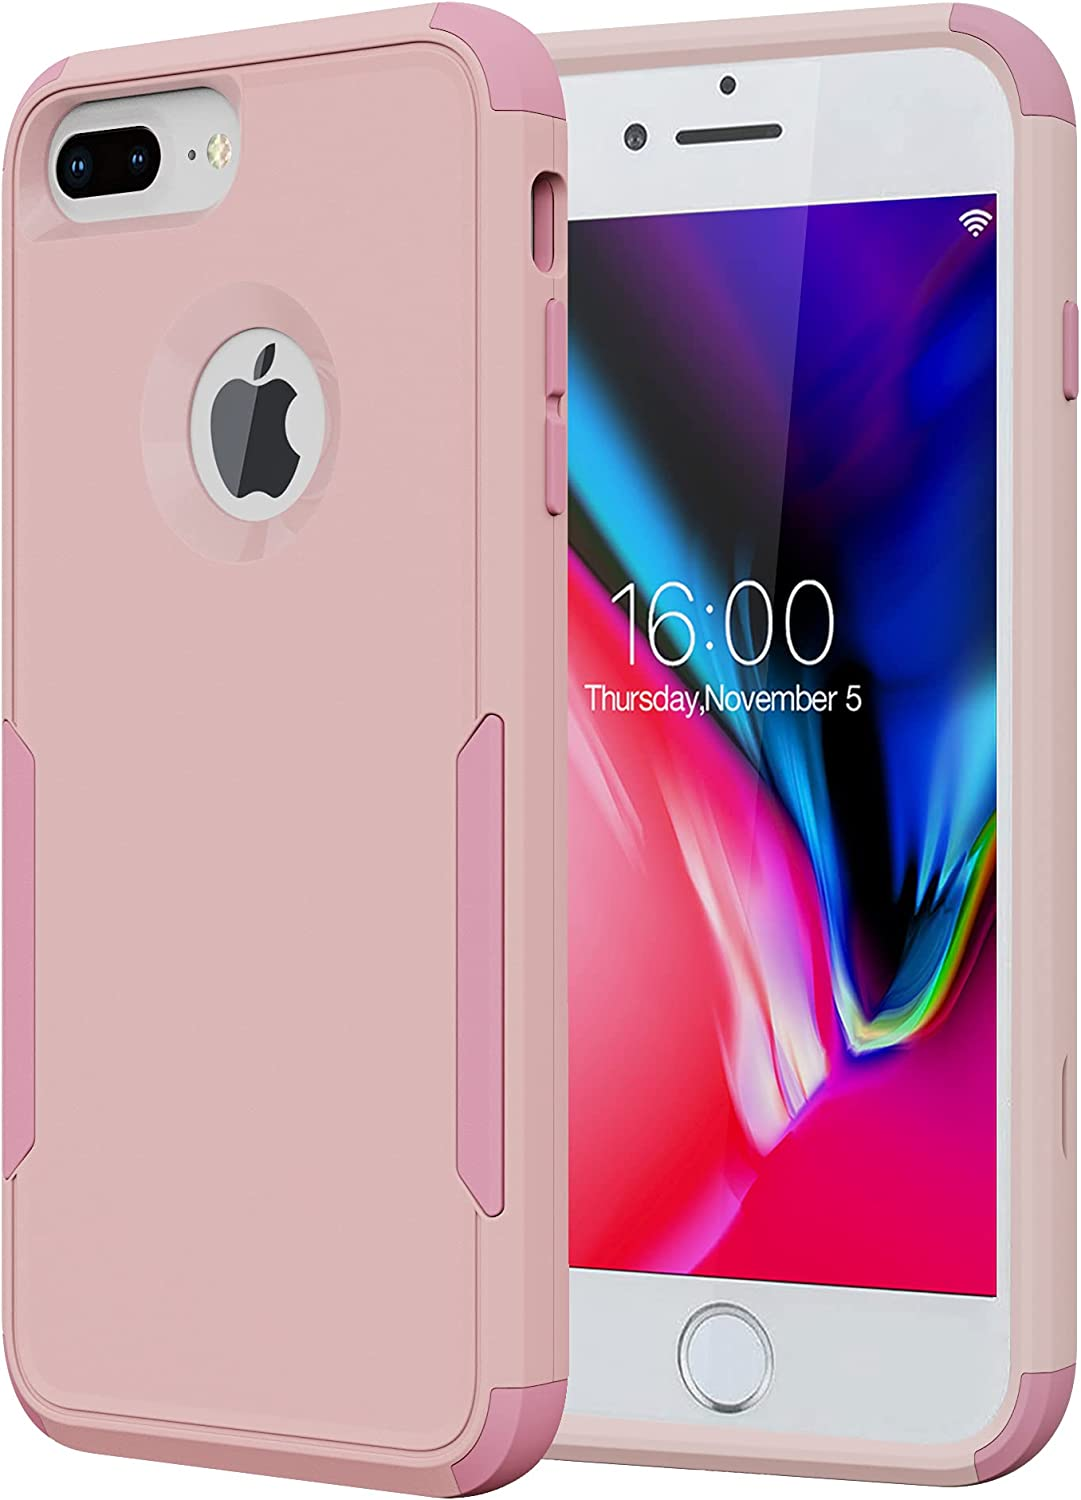 Diverbox Compatible with iPhone 8 Plus Case, iPhone 7 Plus Case [Shockproof] [Dropproof] Heavy Duty Protection Phone Case Cover for Apple iPhone 8 Plus & iPhone 7 Plus (Light Pink)